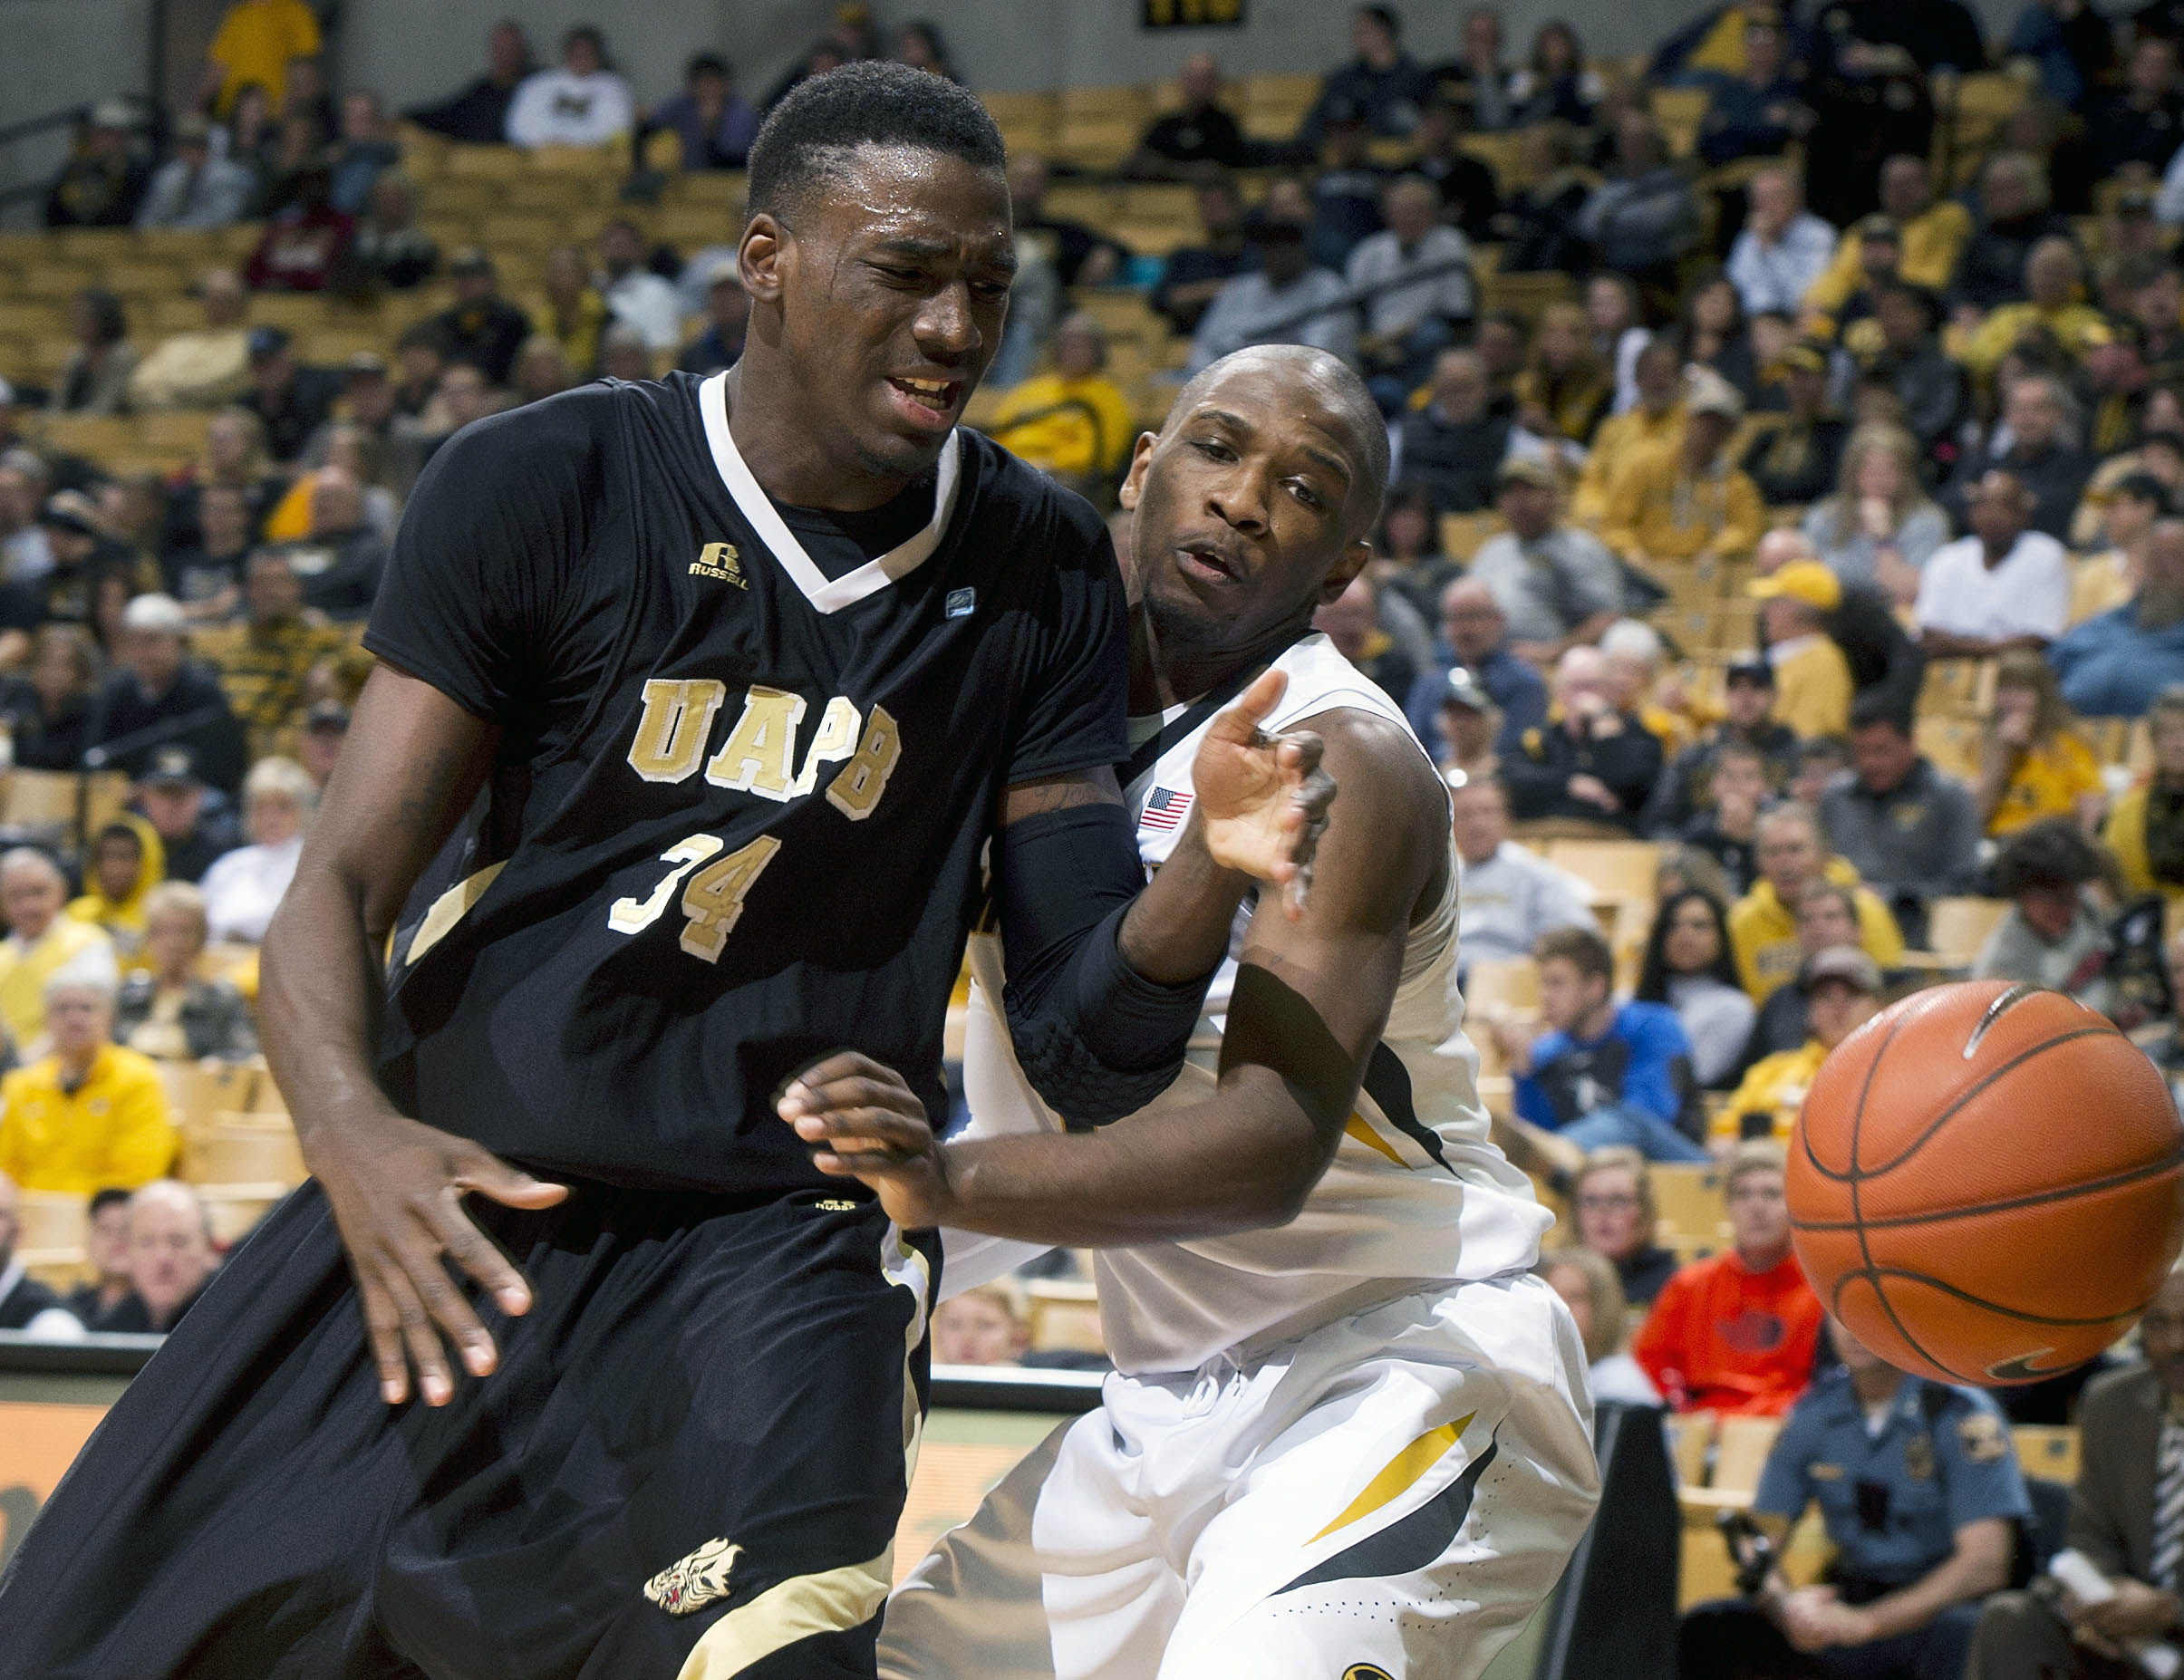 Missouri's Terrence Phillips, right, knocks the ball away from Arkansas-Pine Bluff's Devin Berry, right, during the second half of an NCAA college basketball game, Tuesday, Dec. 29, 2015, in Columbia, Mo. Missouri won the game 78-25. (AP Photo/L.G. Patter